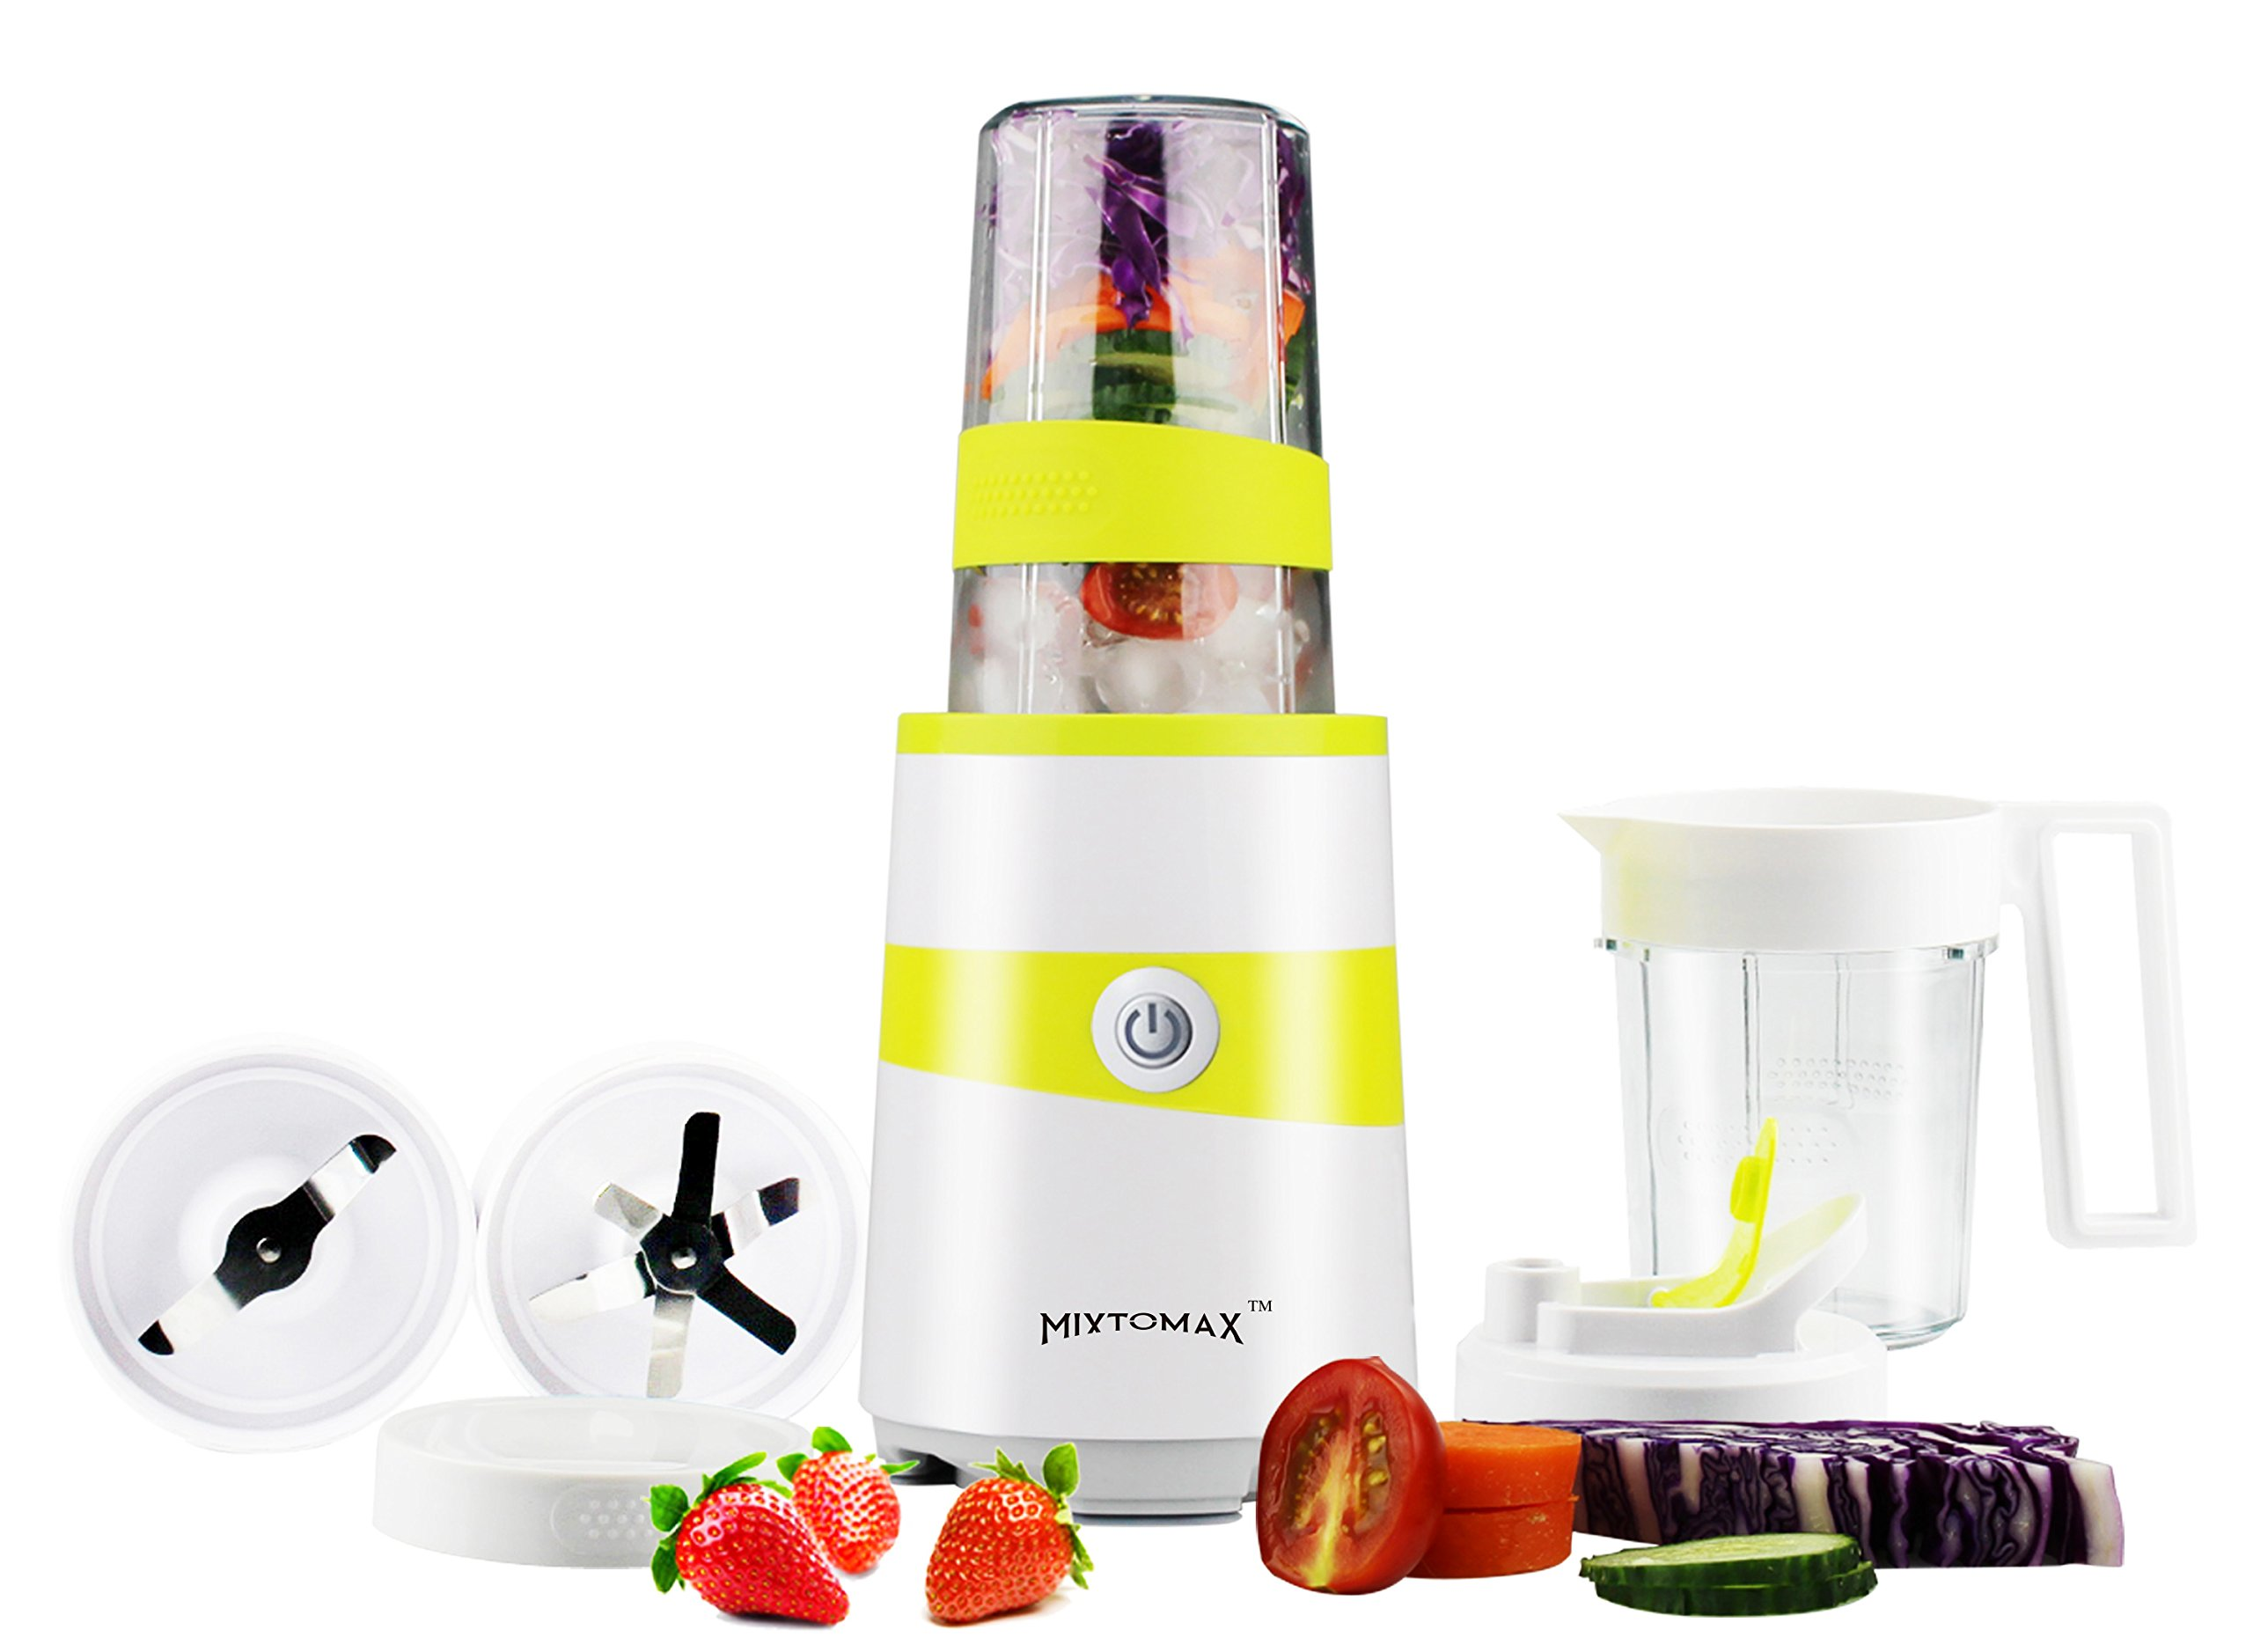 MixtoMax High Speed Smoothie Blender Multifunctional Mixer 1000W Compact and High-Power with 2 BPA Free Cups and 2 Stainless Steel Blades for Extracting and Milling …